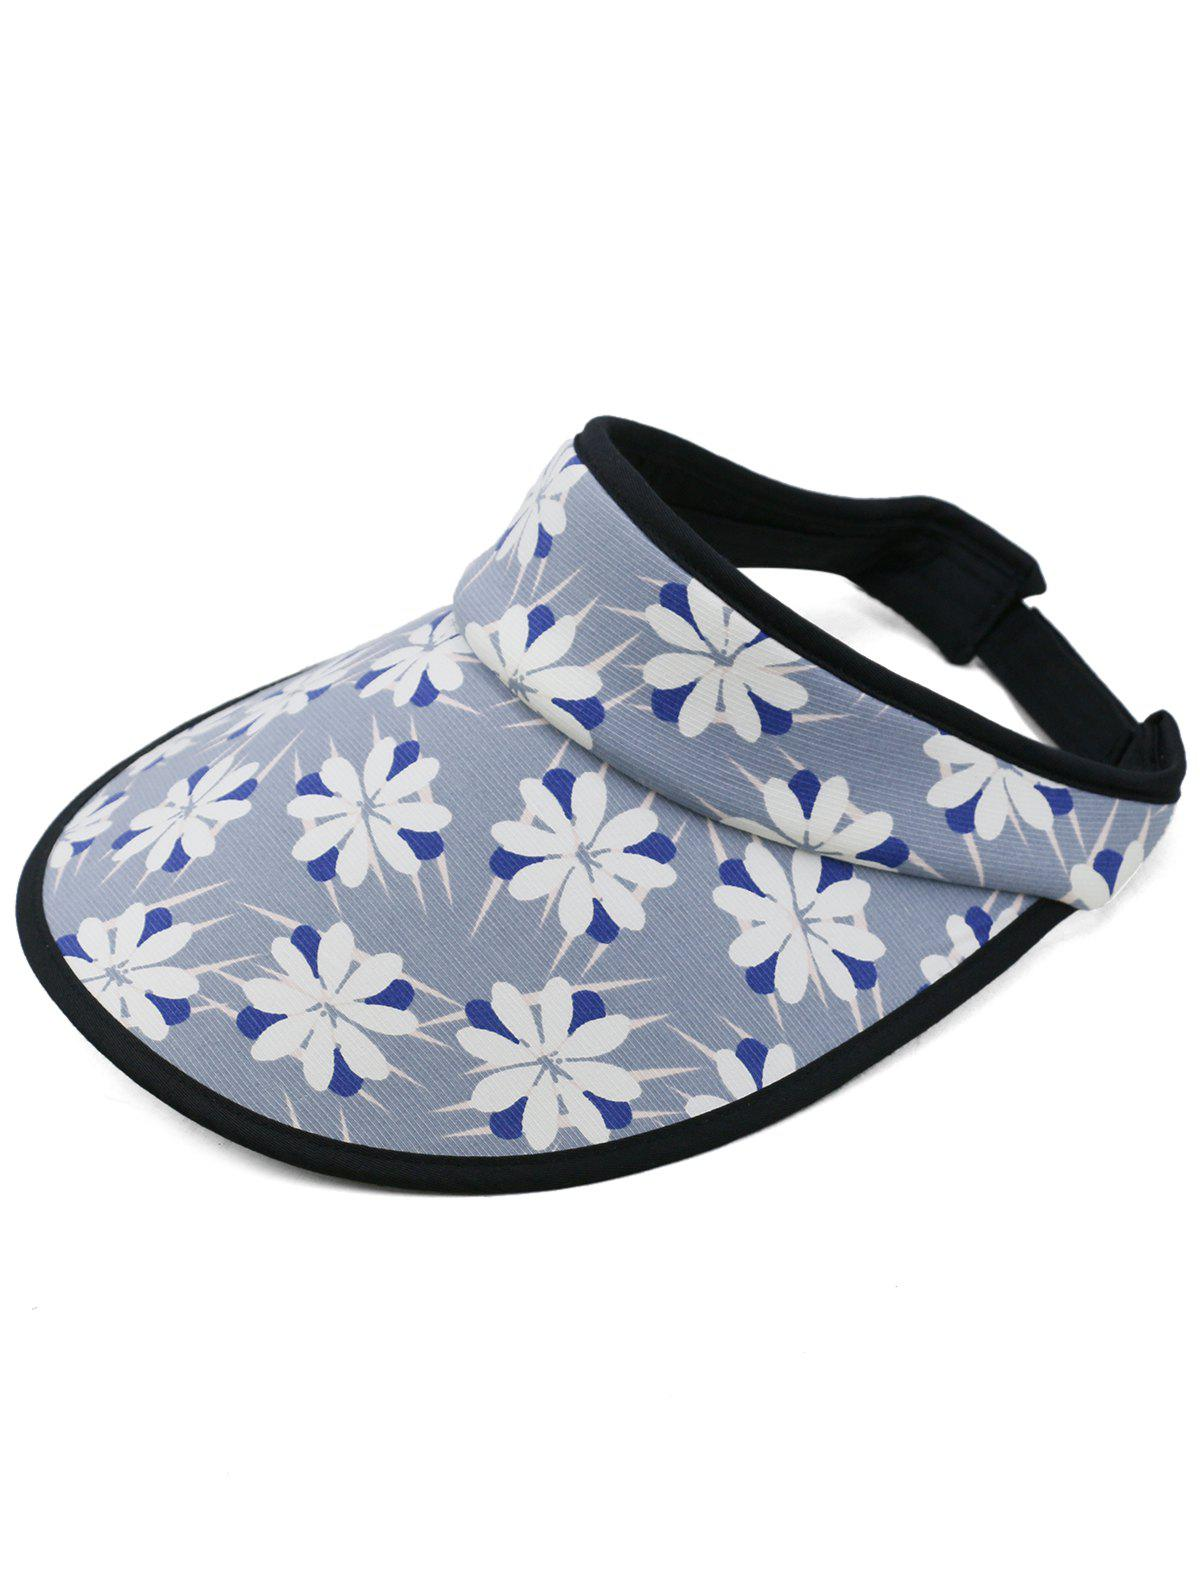 Hot Pretty Floral Printed Open Top Sunscreen Hat